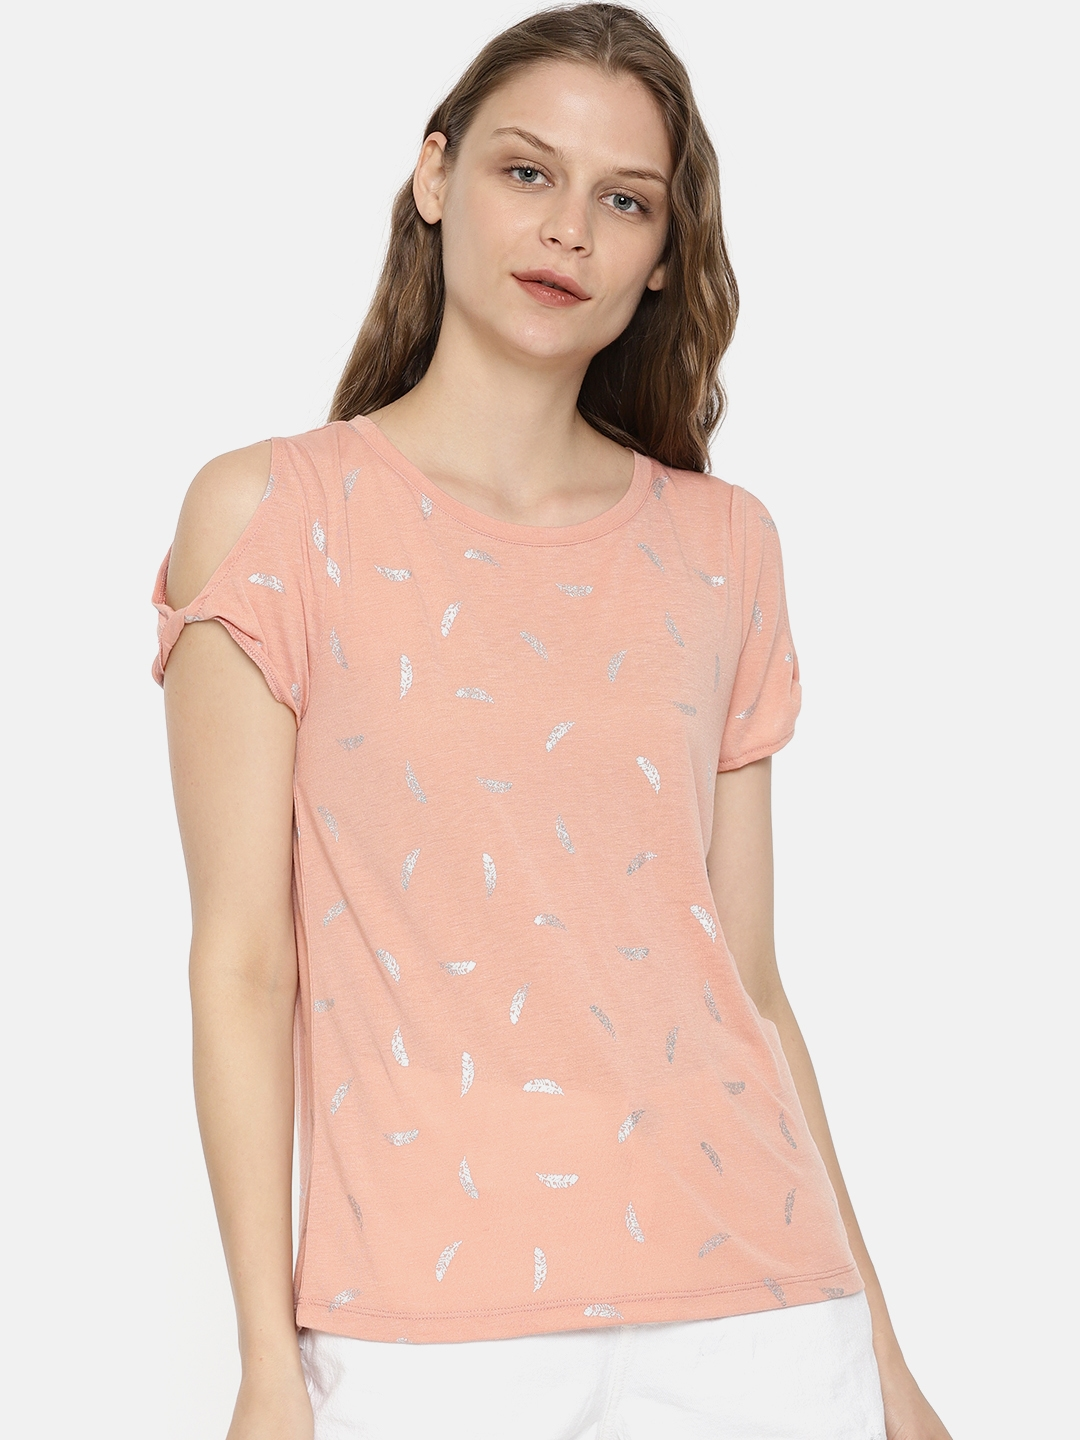 5b6e81c54feec6 Buy ONLY Women Pink Printed Top - Tops for Women 4424535